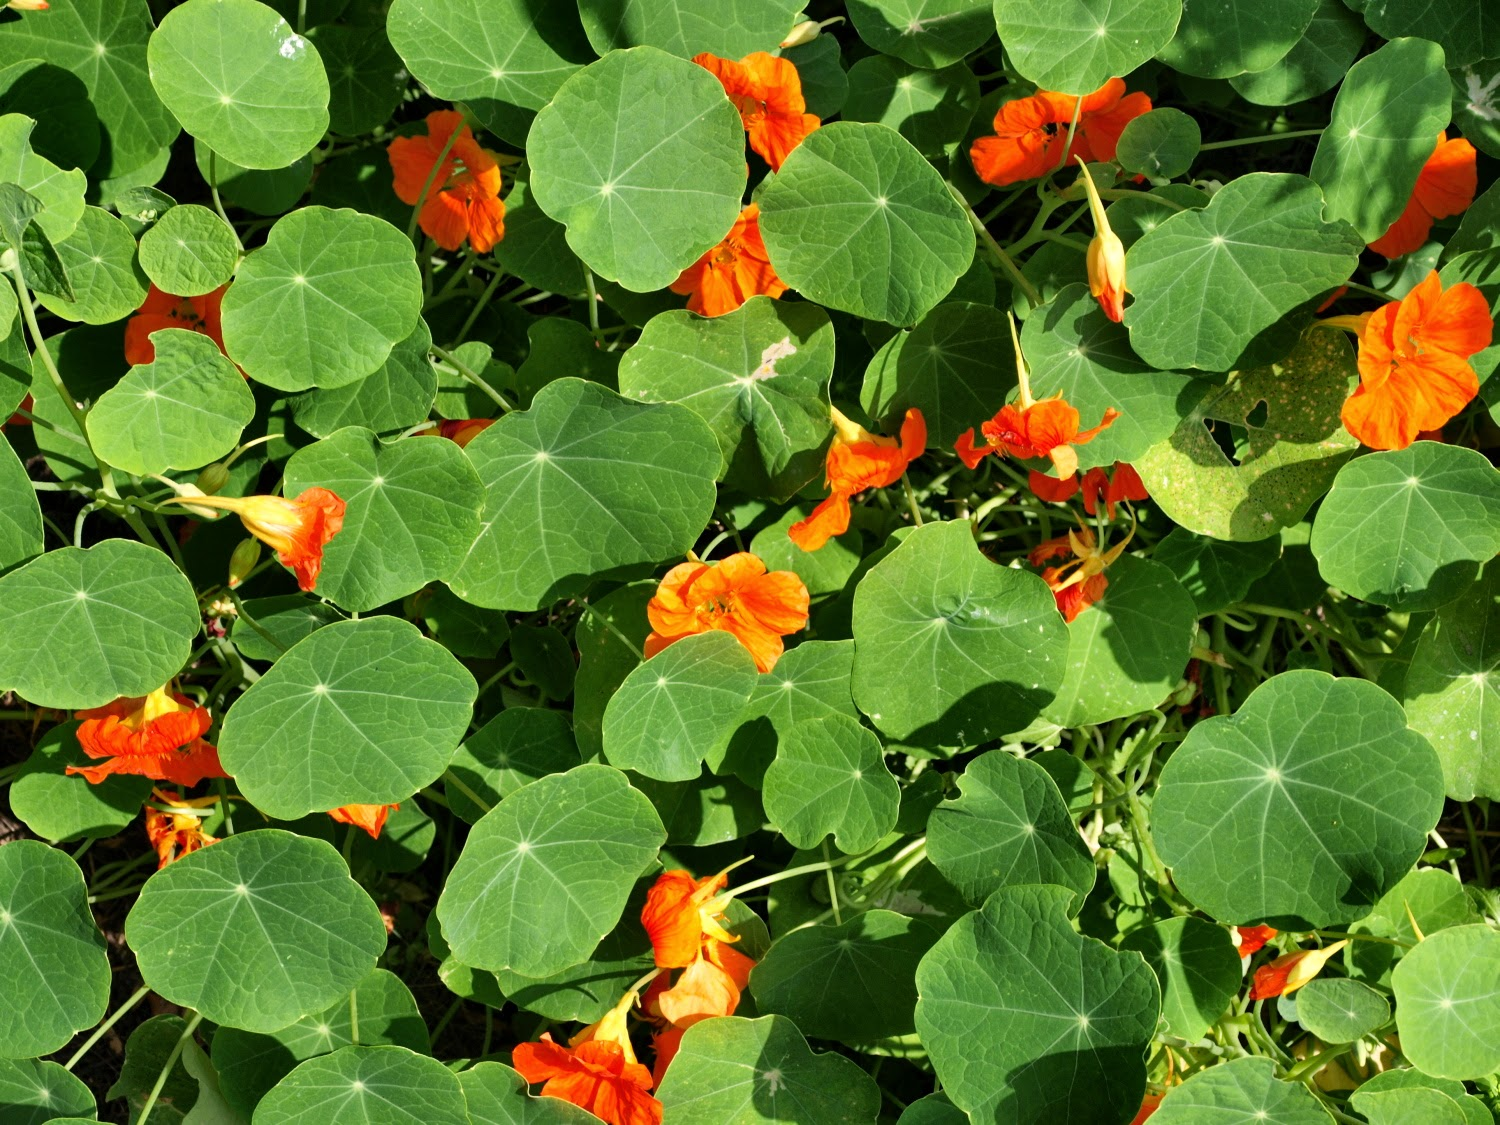 An image of nasturtium (Tropaeolum majus) leaves and flowers